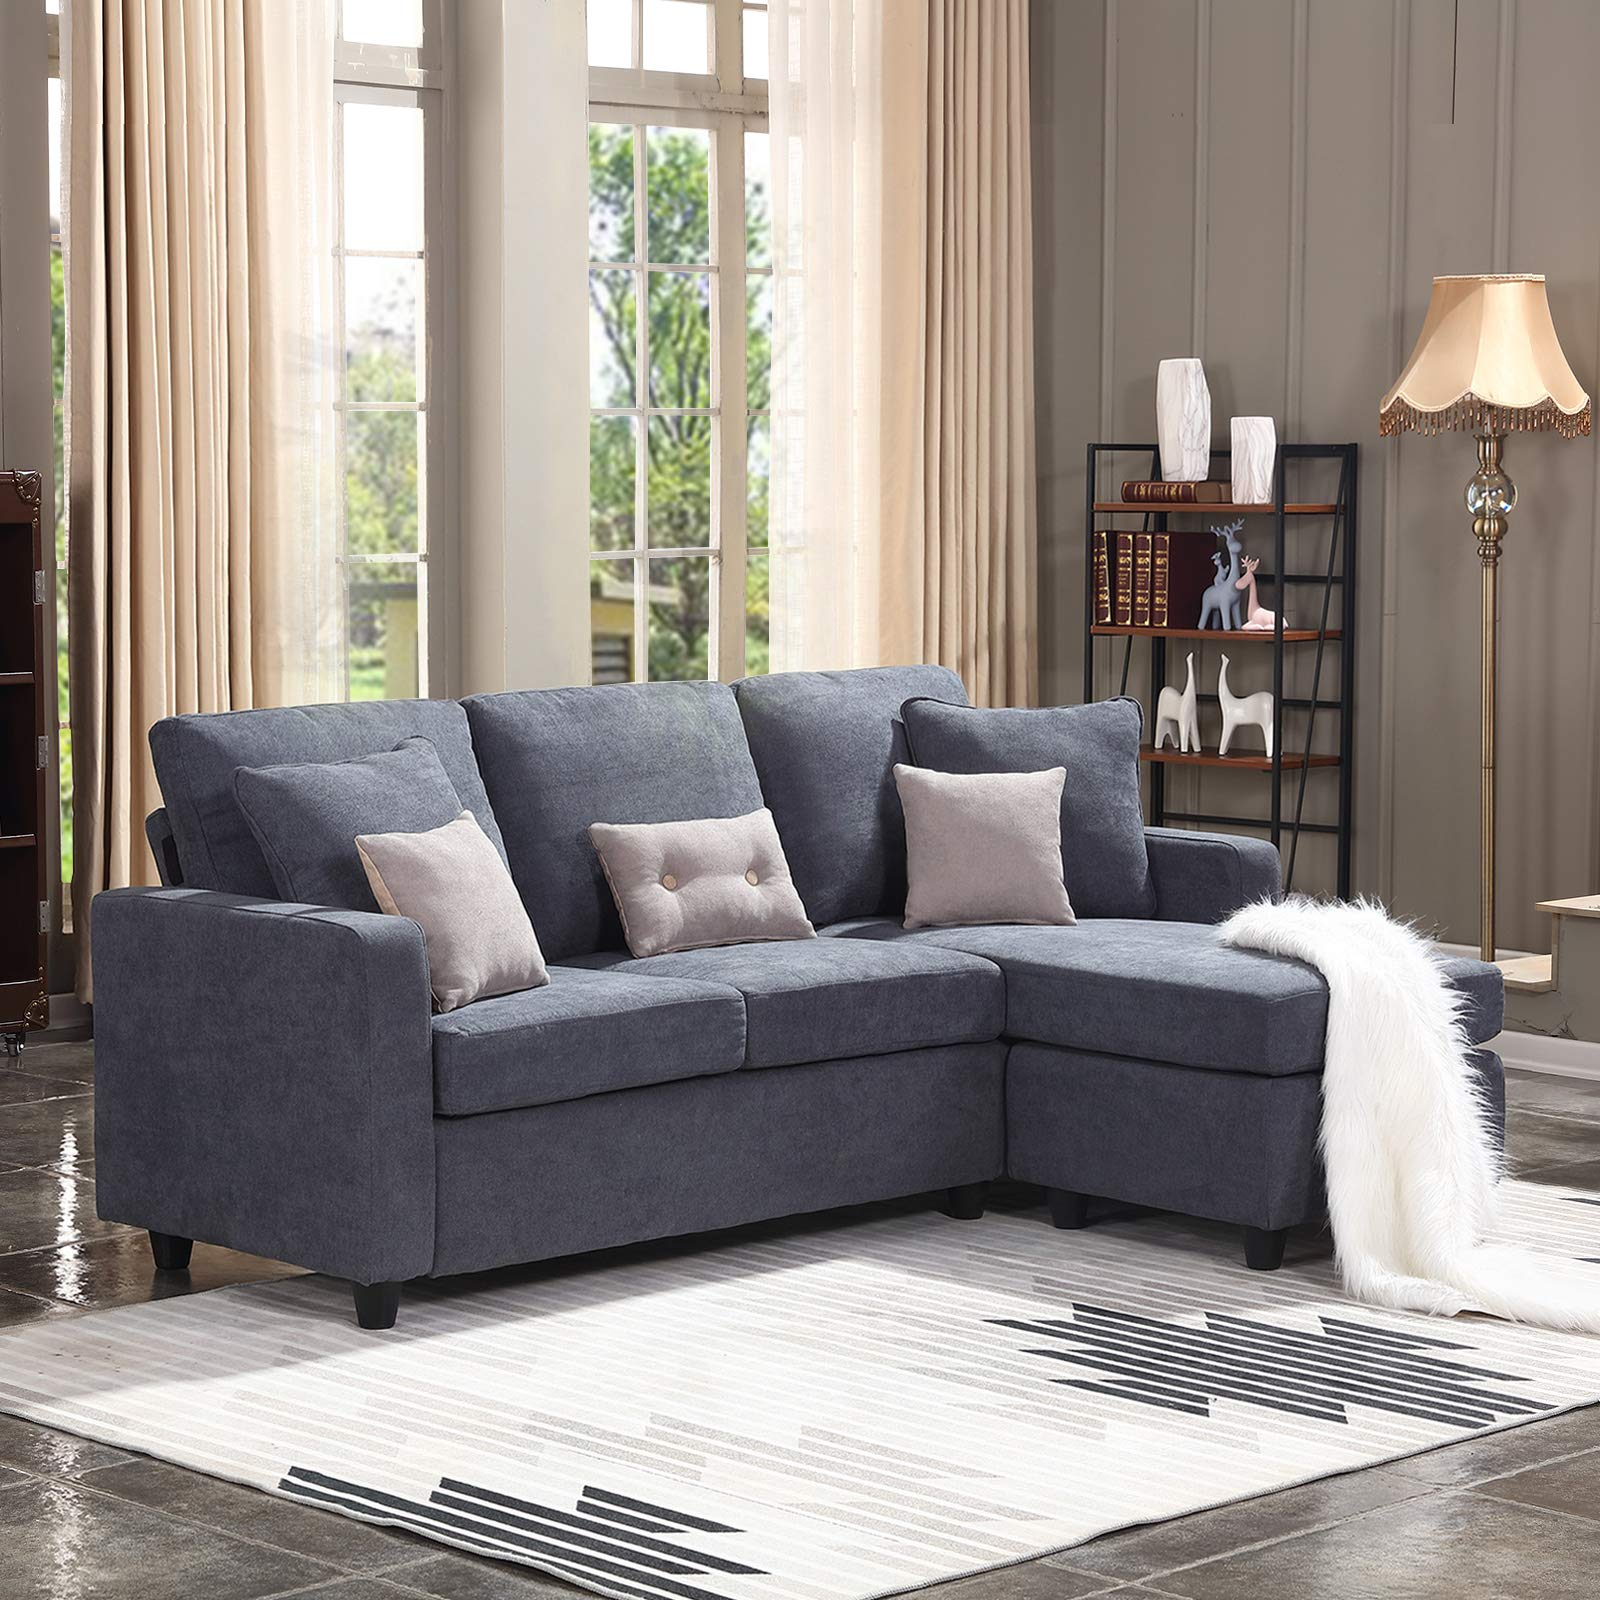 HONBAY Convertible Sectional Sofa Couch, L-Shaped Couch with Modern Linen Fabric for Small Space Dark Grey by Honbay